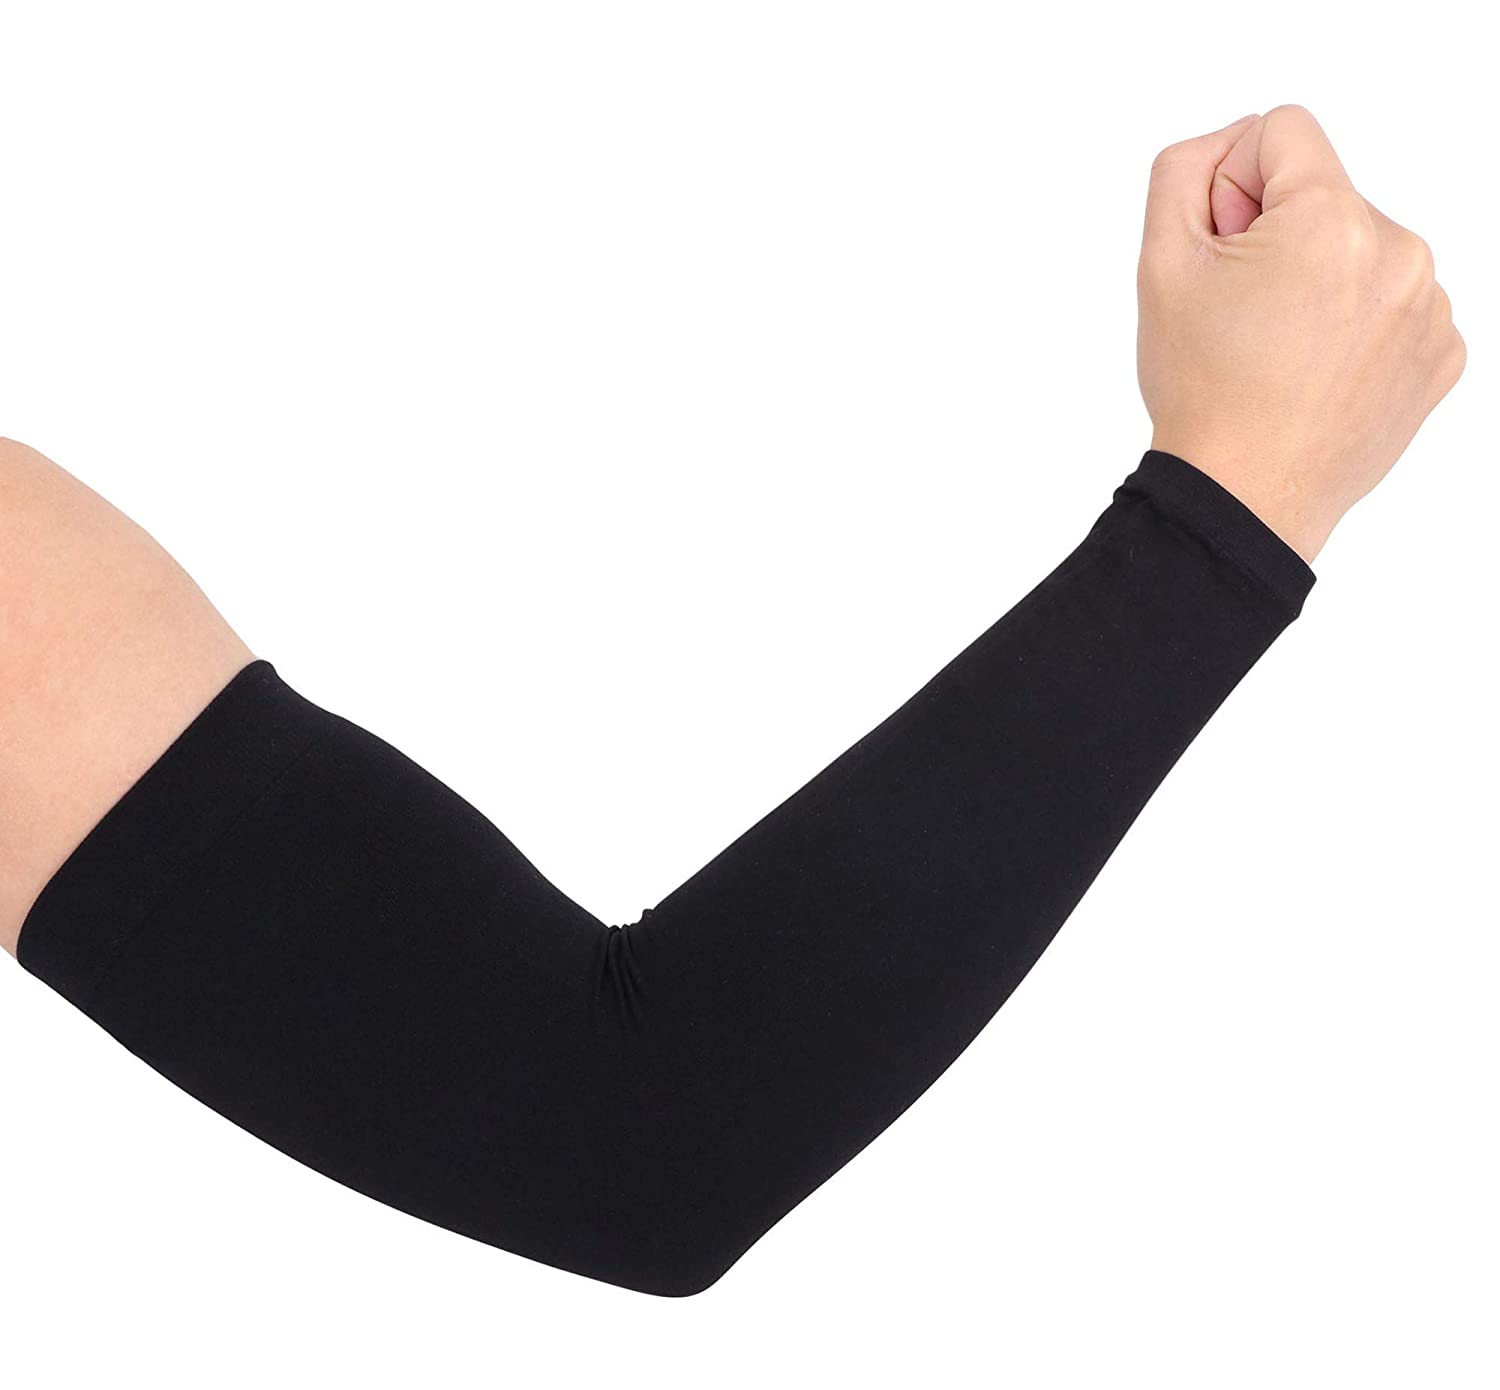 Simplicity Outdoor Sports UV Sun Protection Stretchy Cooling Forearm Sleeves